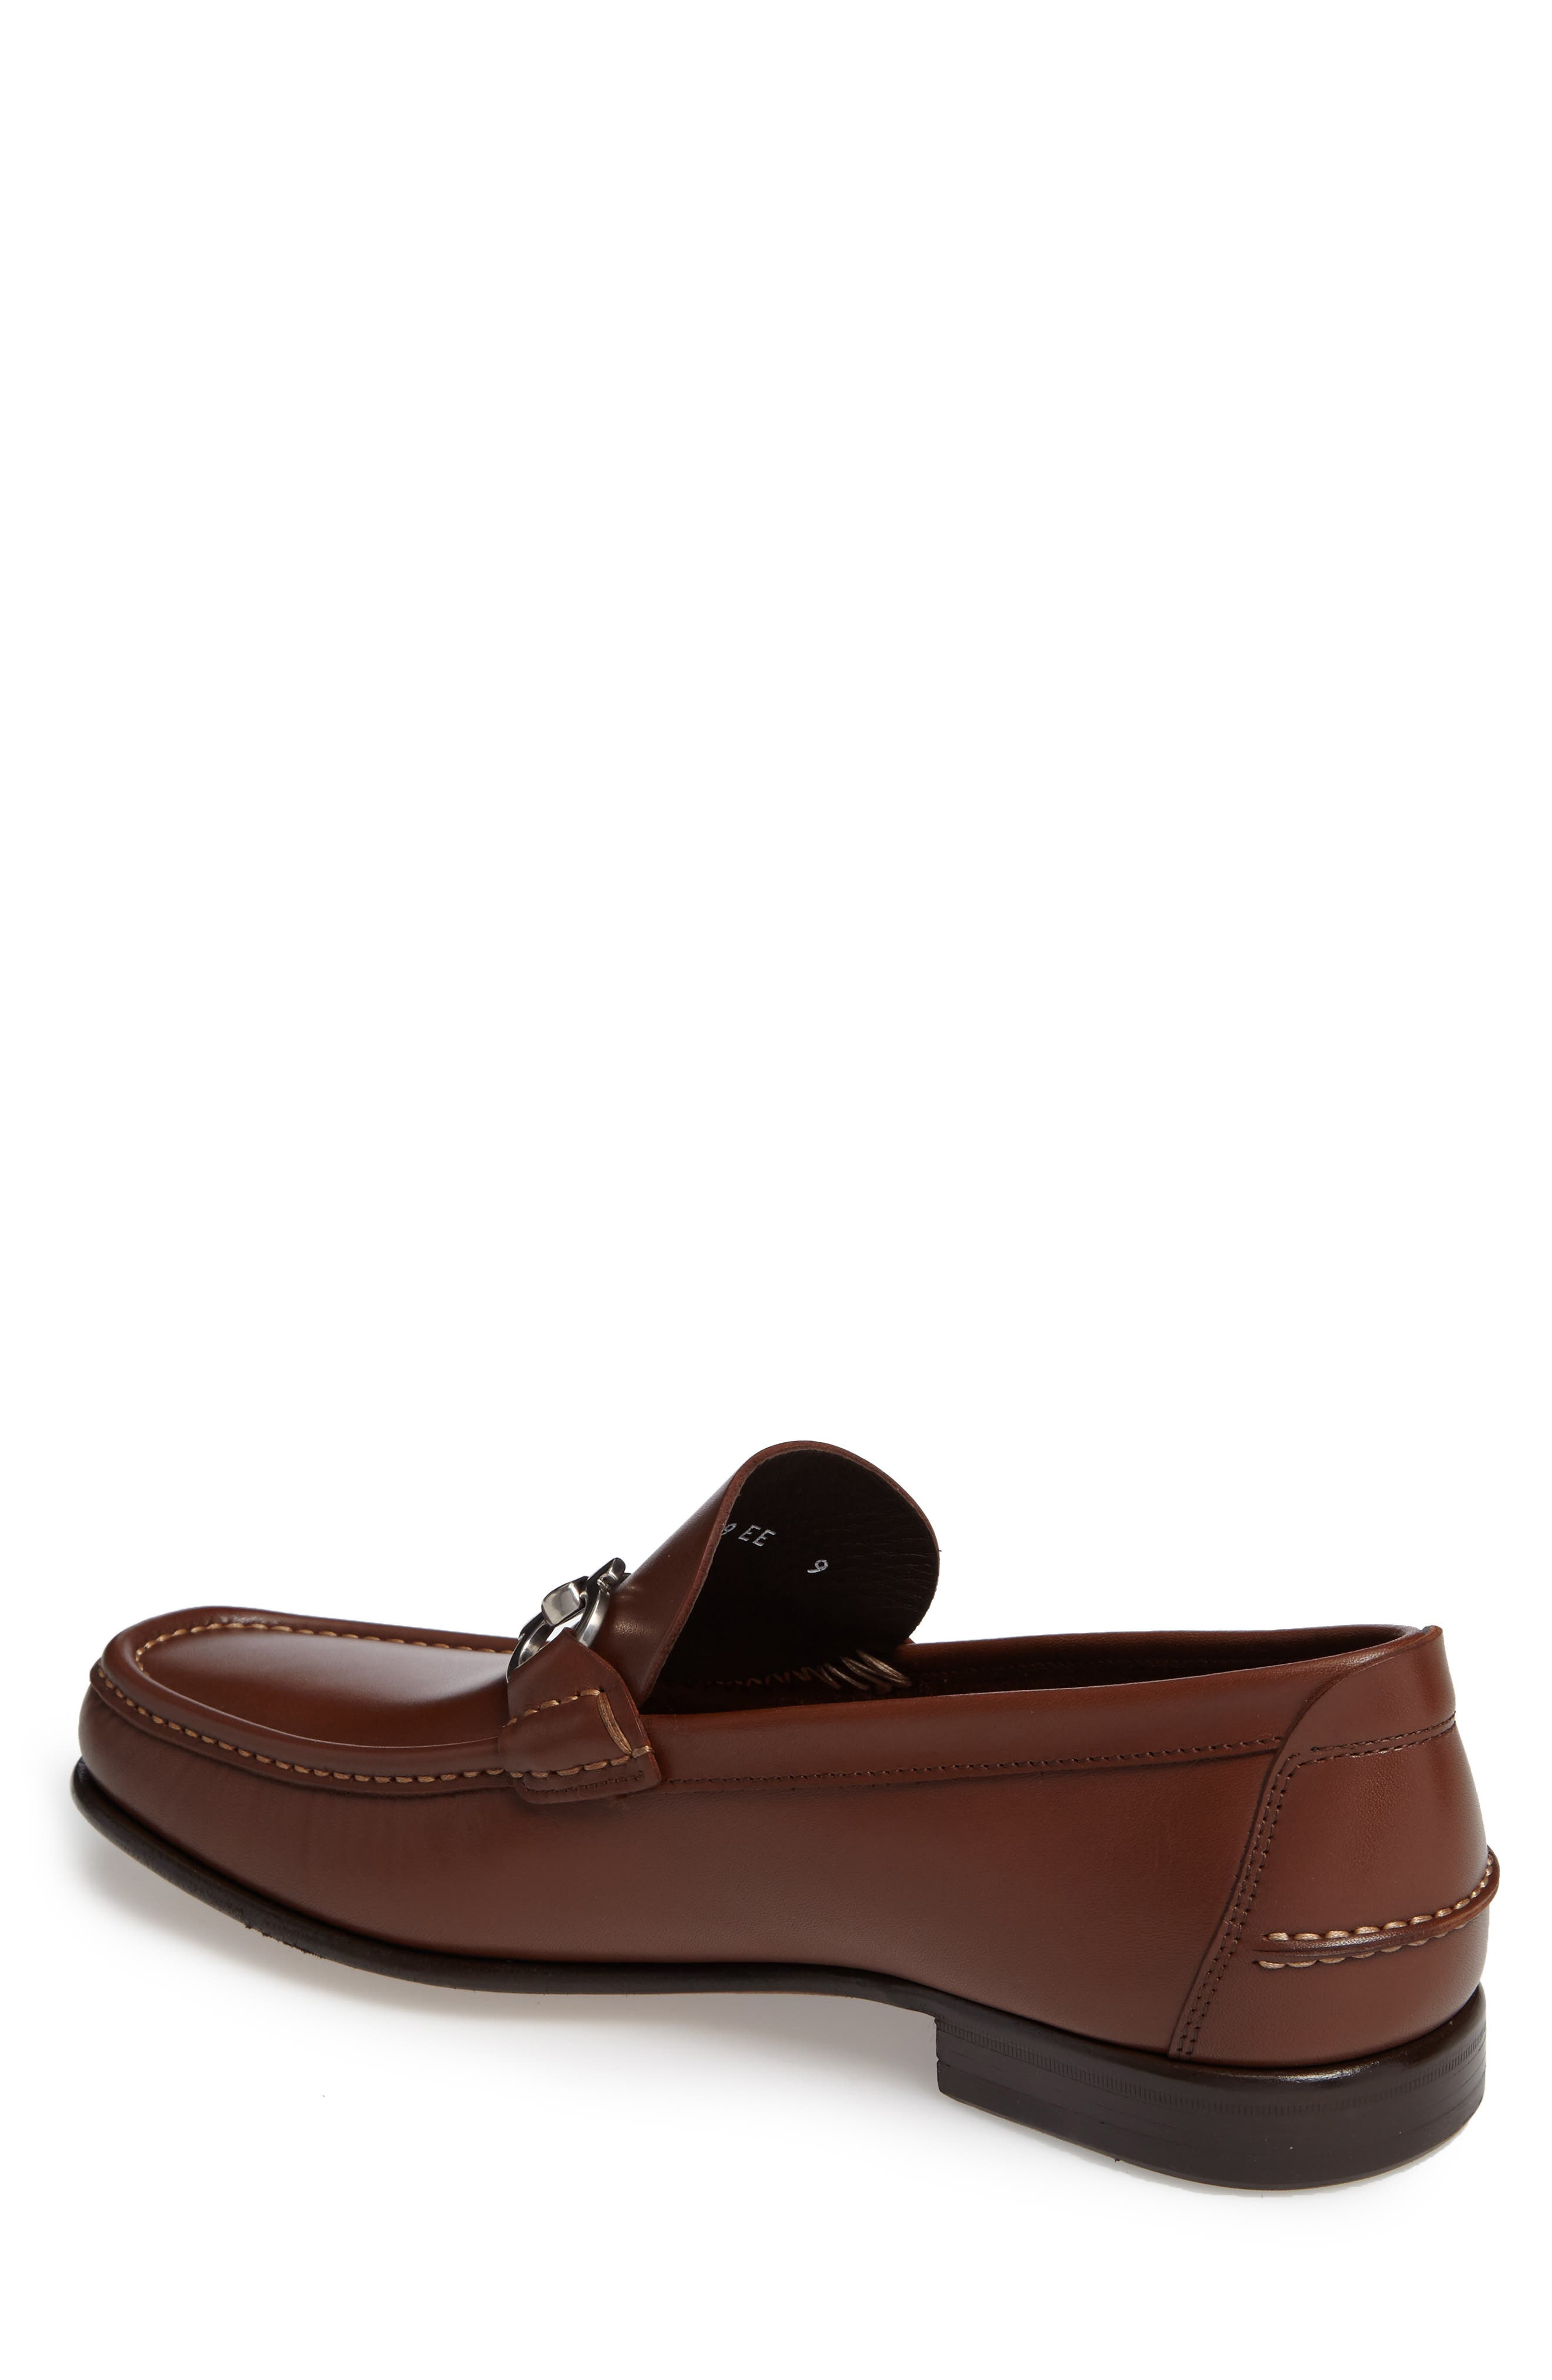 Bit Loafer,                             Alternate thumbnail 2, color,                             Brown Leather